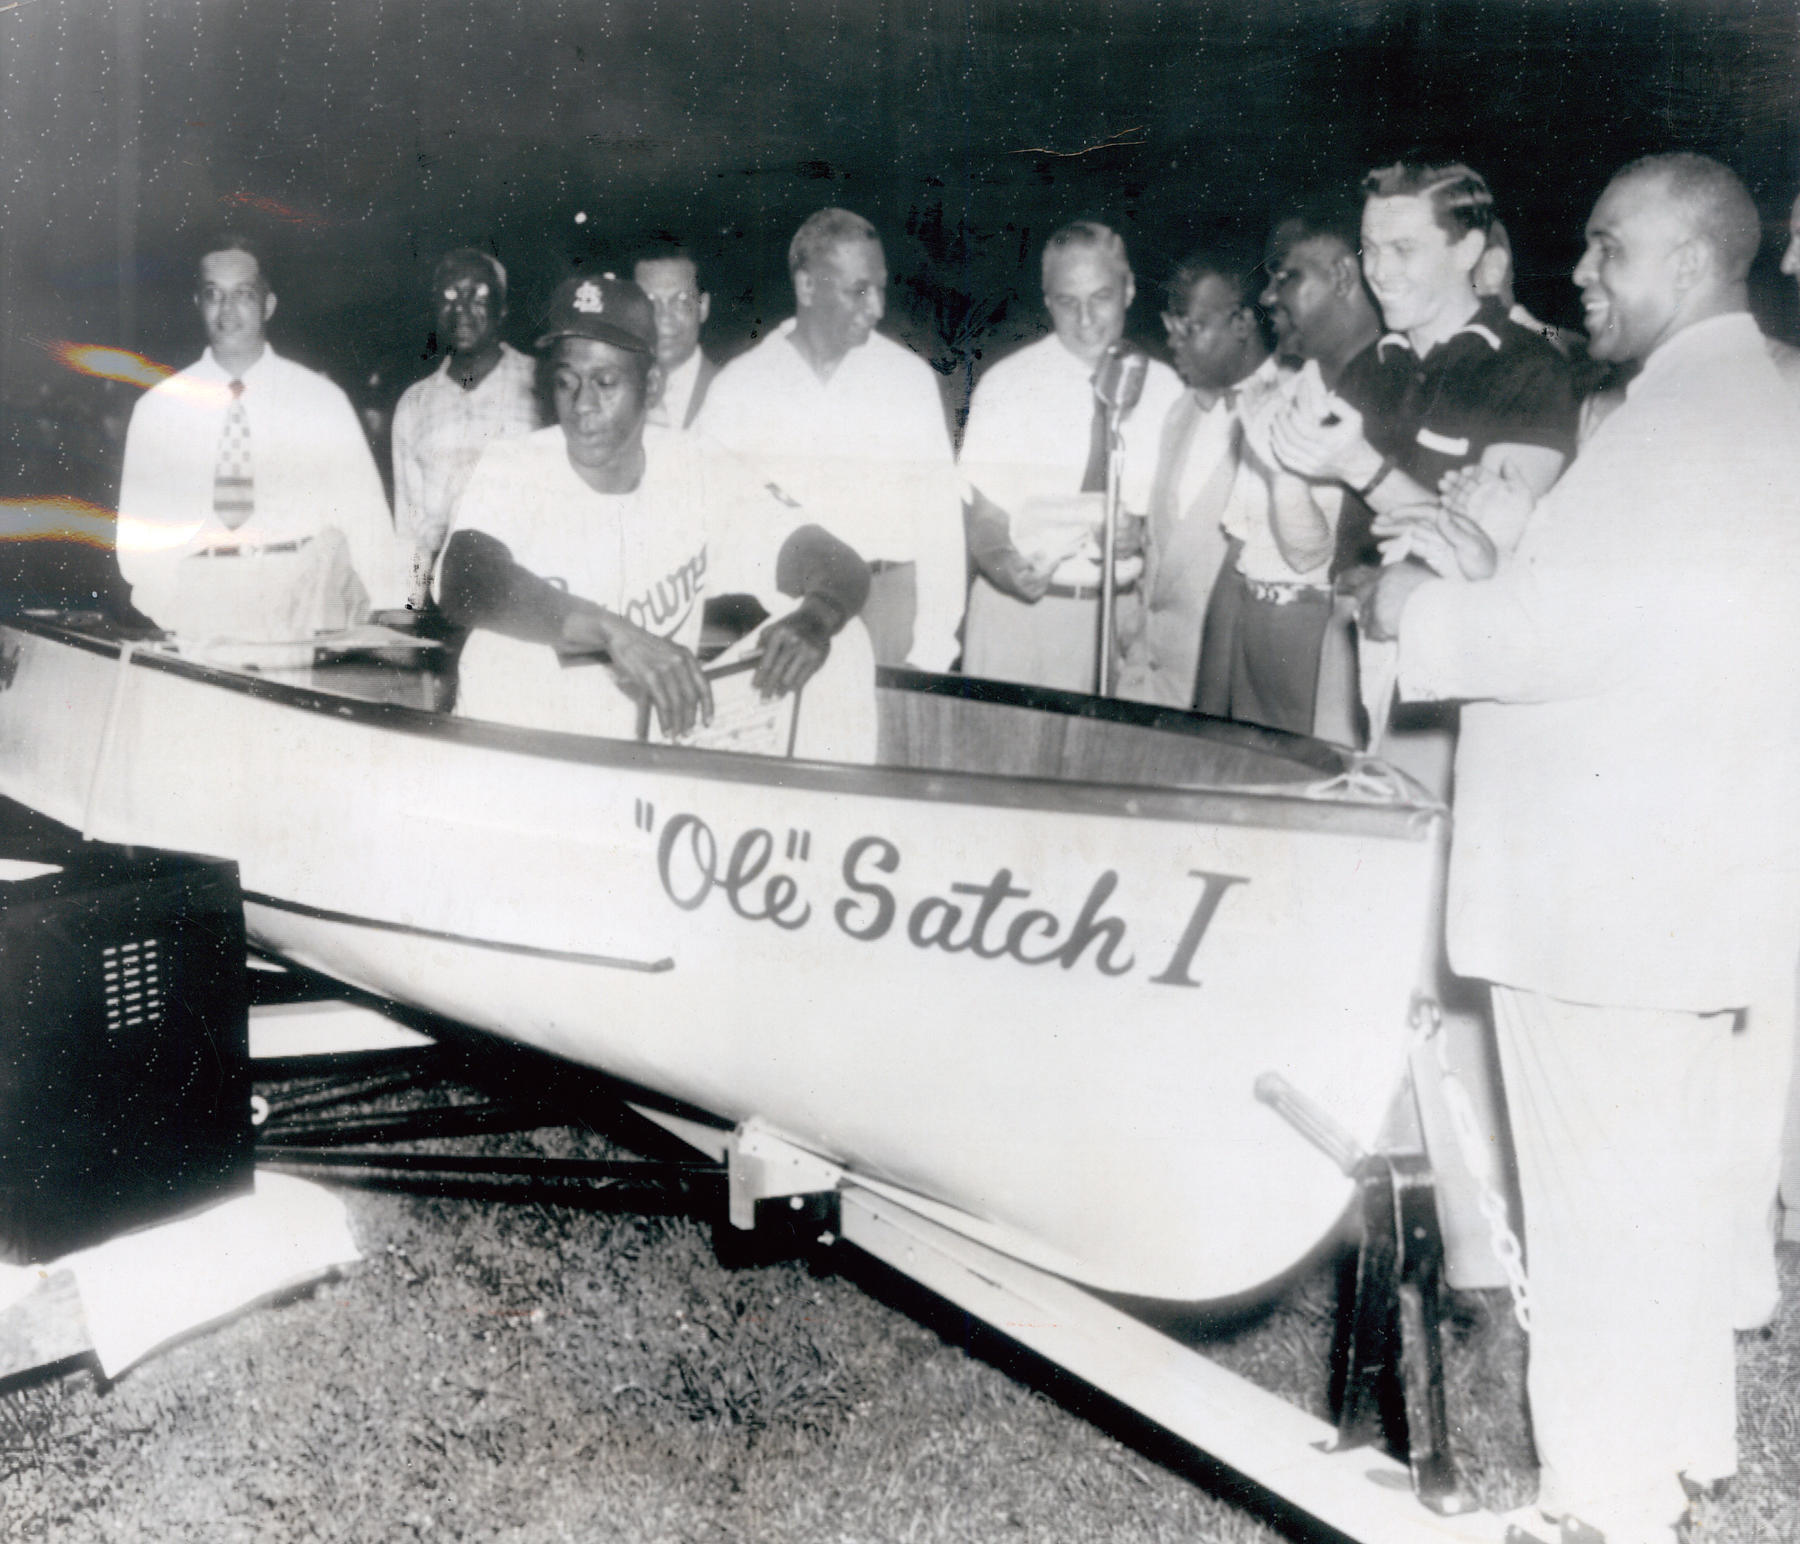 Satchel Paige sits in a boat named 'Ole Satch I' given to him by his St. Louis Browns owner Bill Veeck in 1952. Paige was 46 at the time. BL-4293-76 (National Baseball Hall of Fame Library)